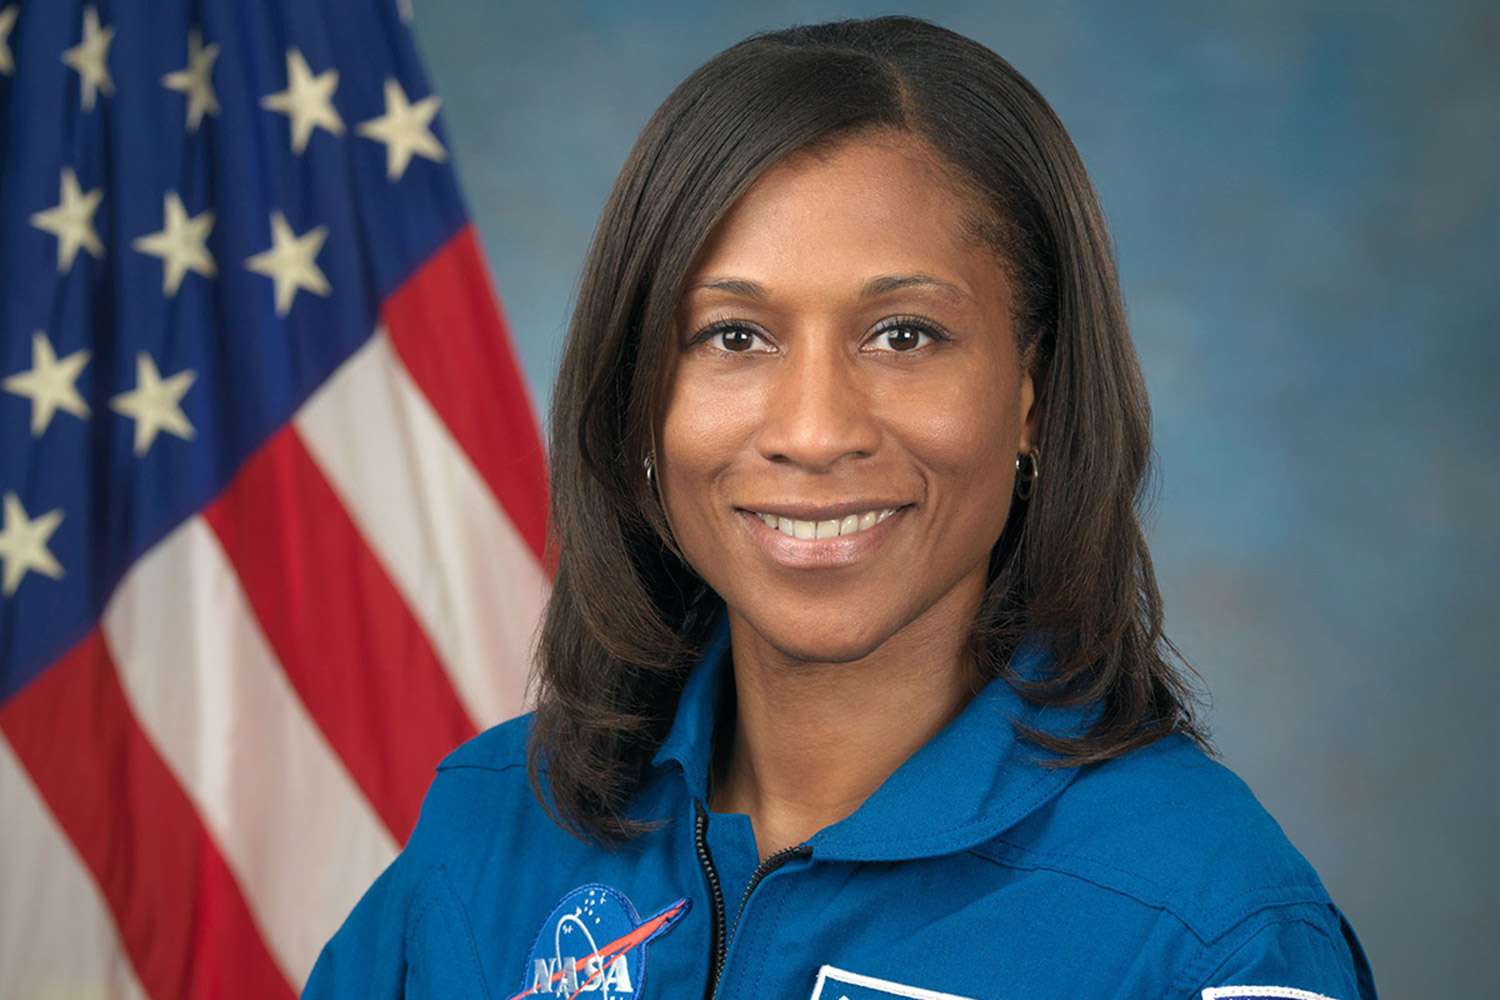 Jeanette Epps, first Black woman astronaut to join International Space Station crew